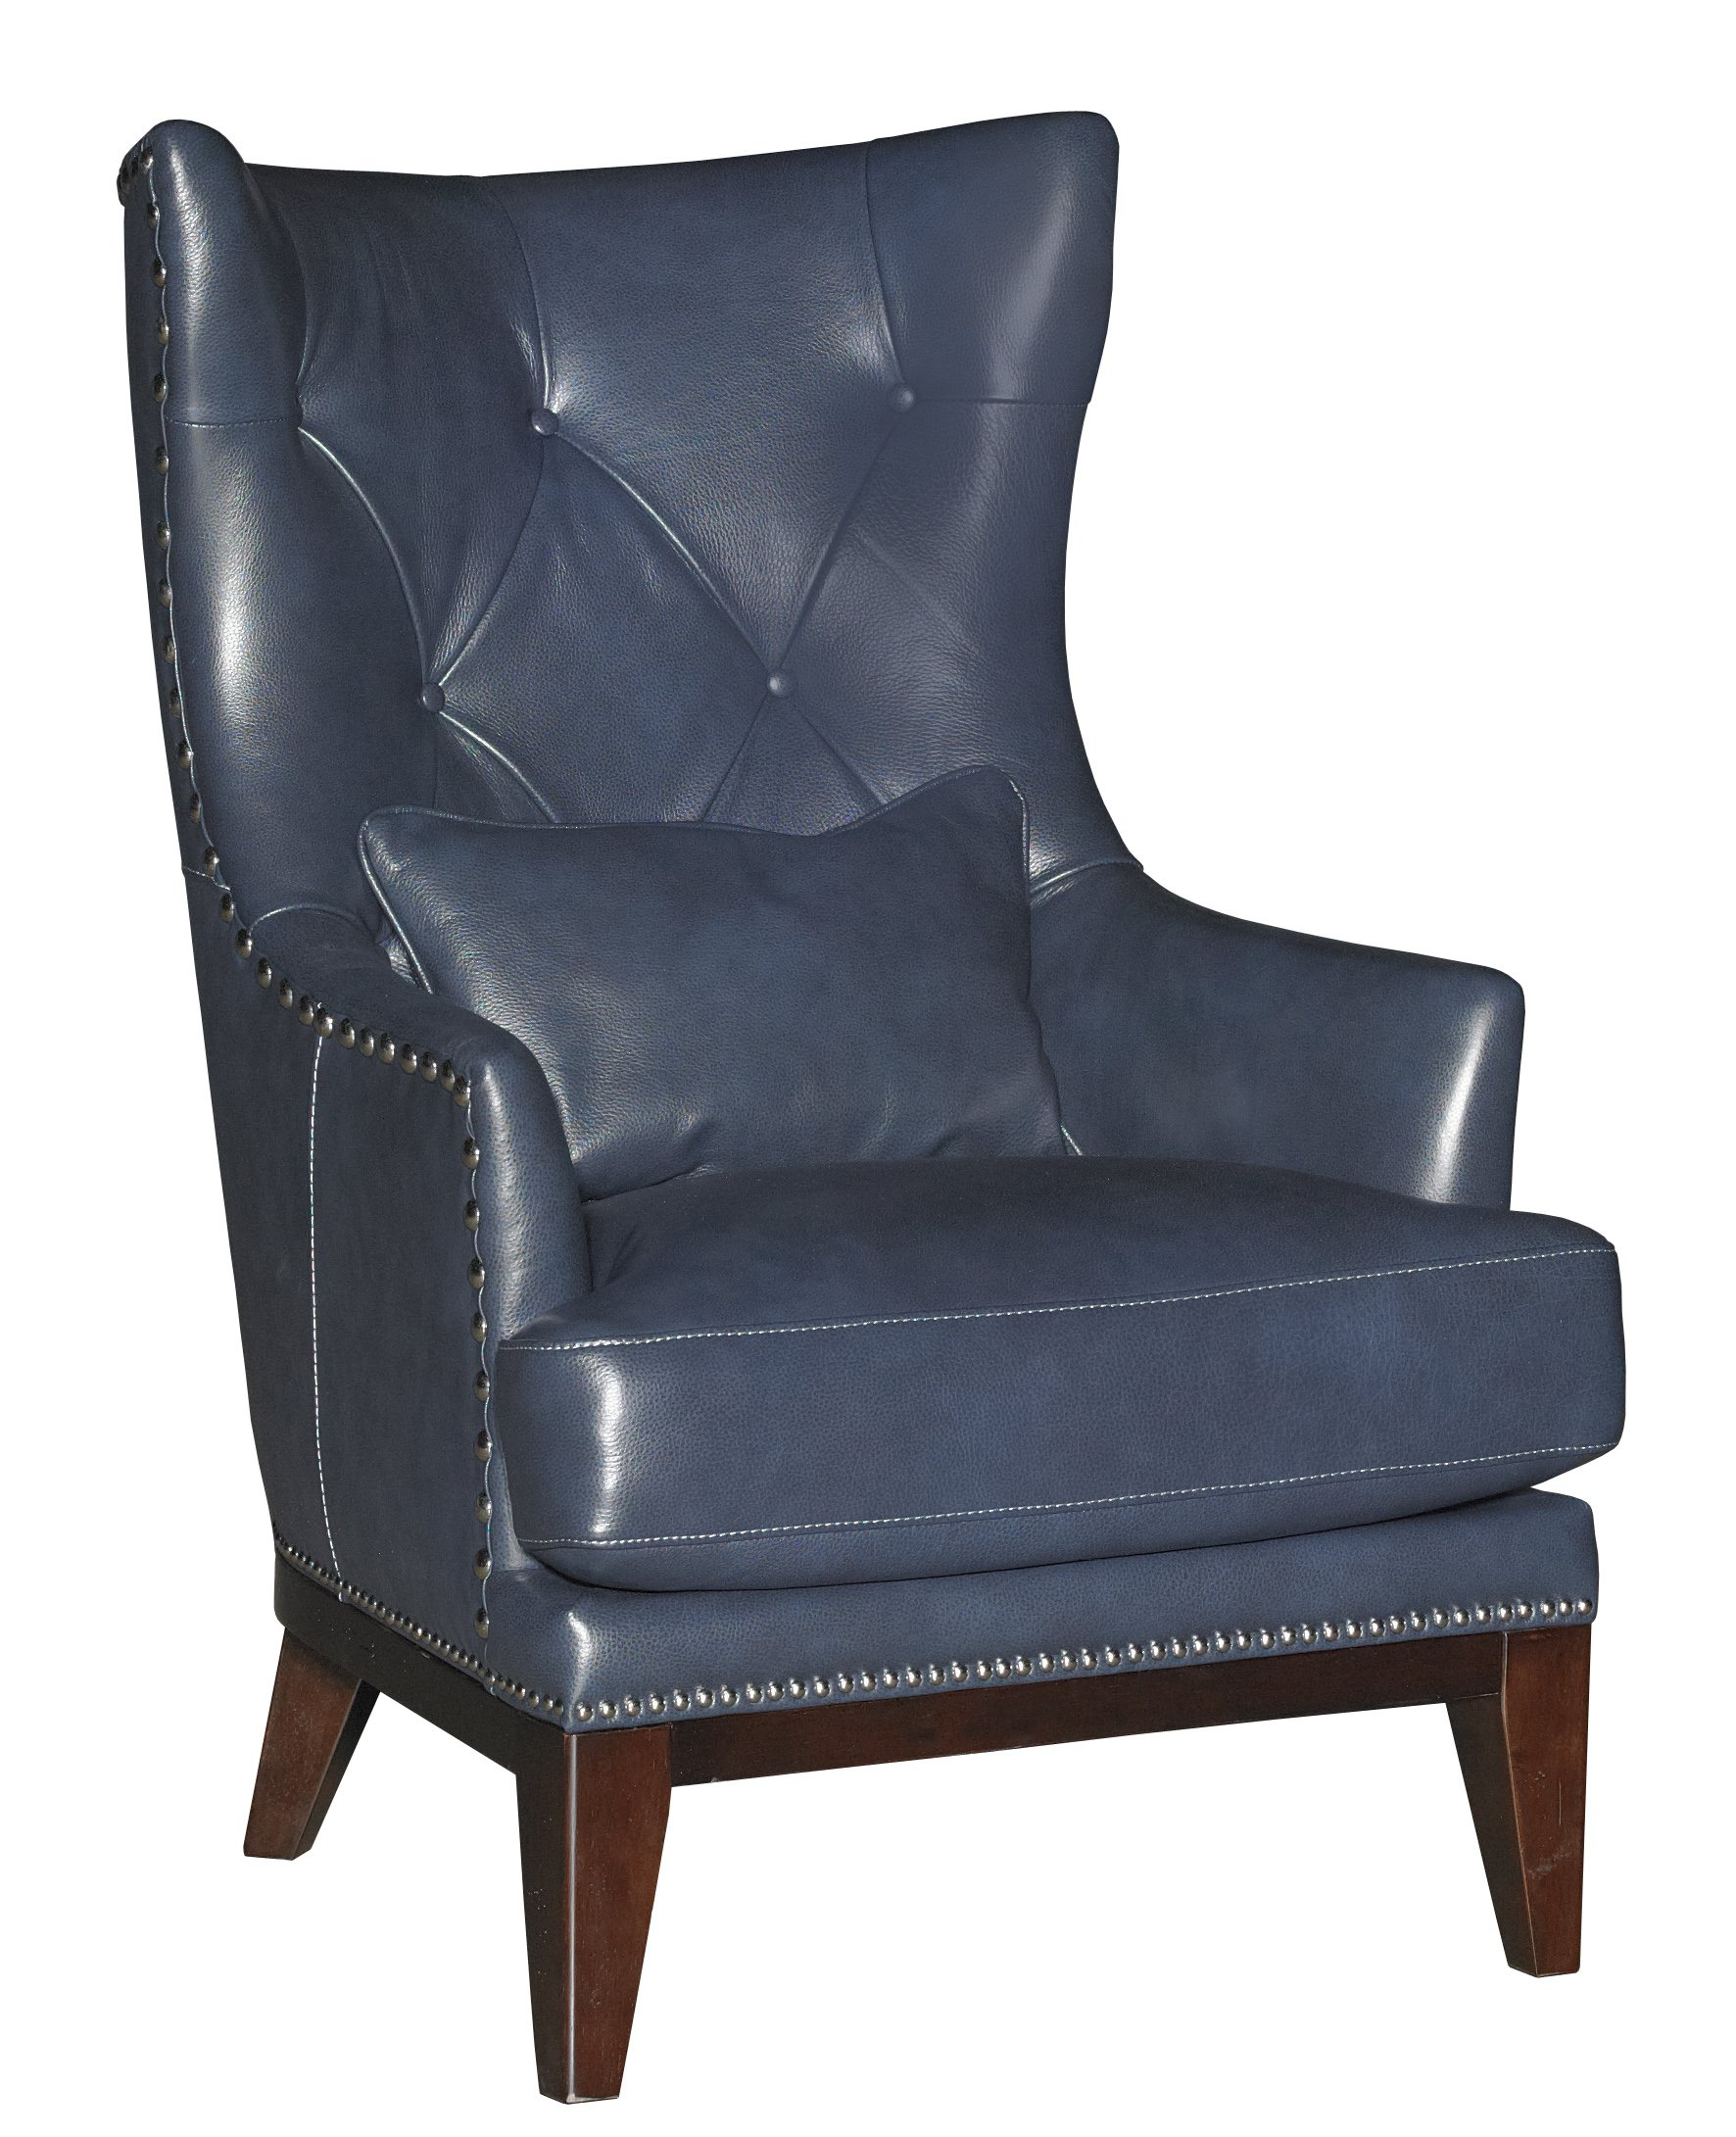 Blue Leather Club Chair Cobalt Blue Leather Match Accent Chair And Ottoman